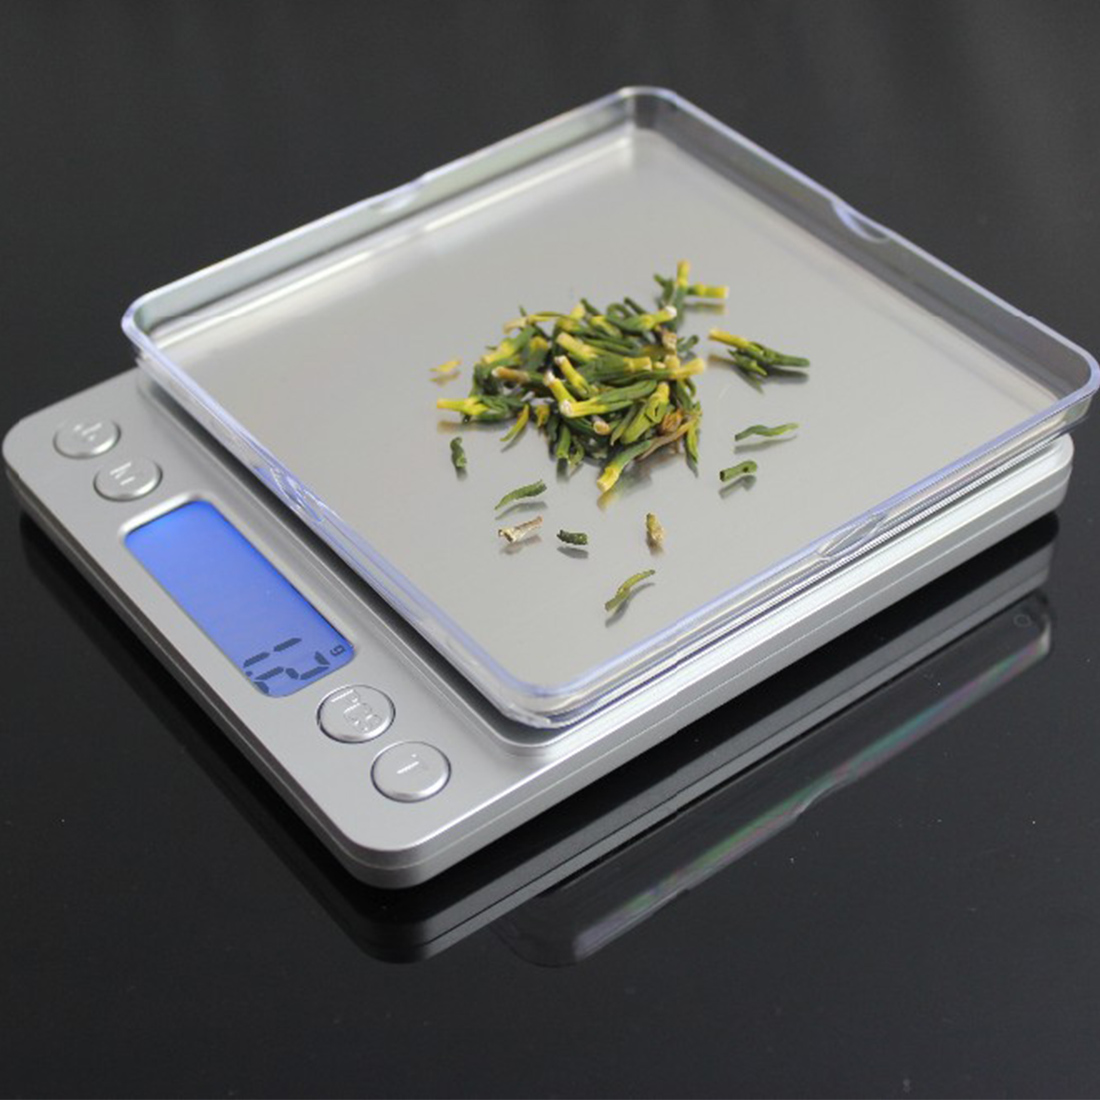 3000gx0.1g Digital Kitchen Scale Mini Pocket Stainless Steel Precision Jewelry Electronic Balance Weight Gold Grams